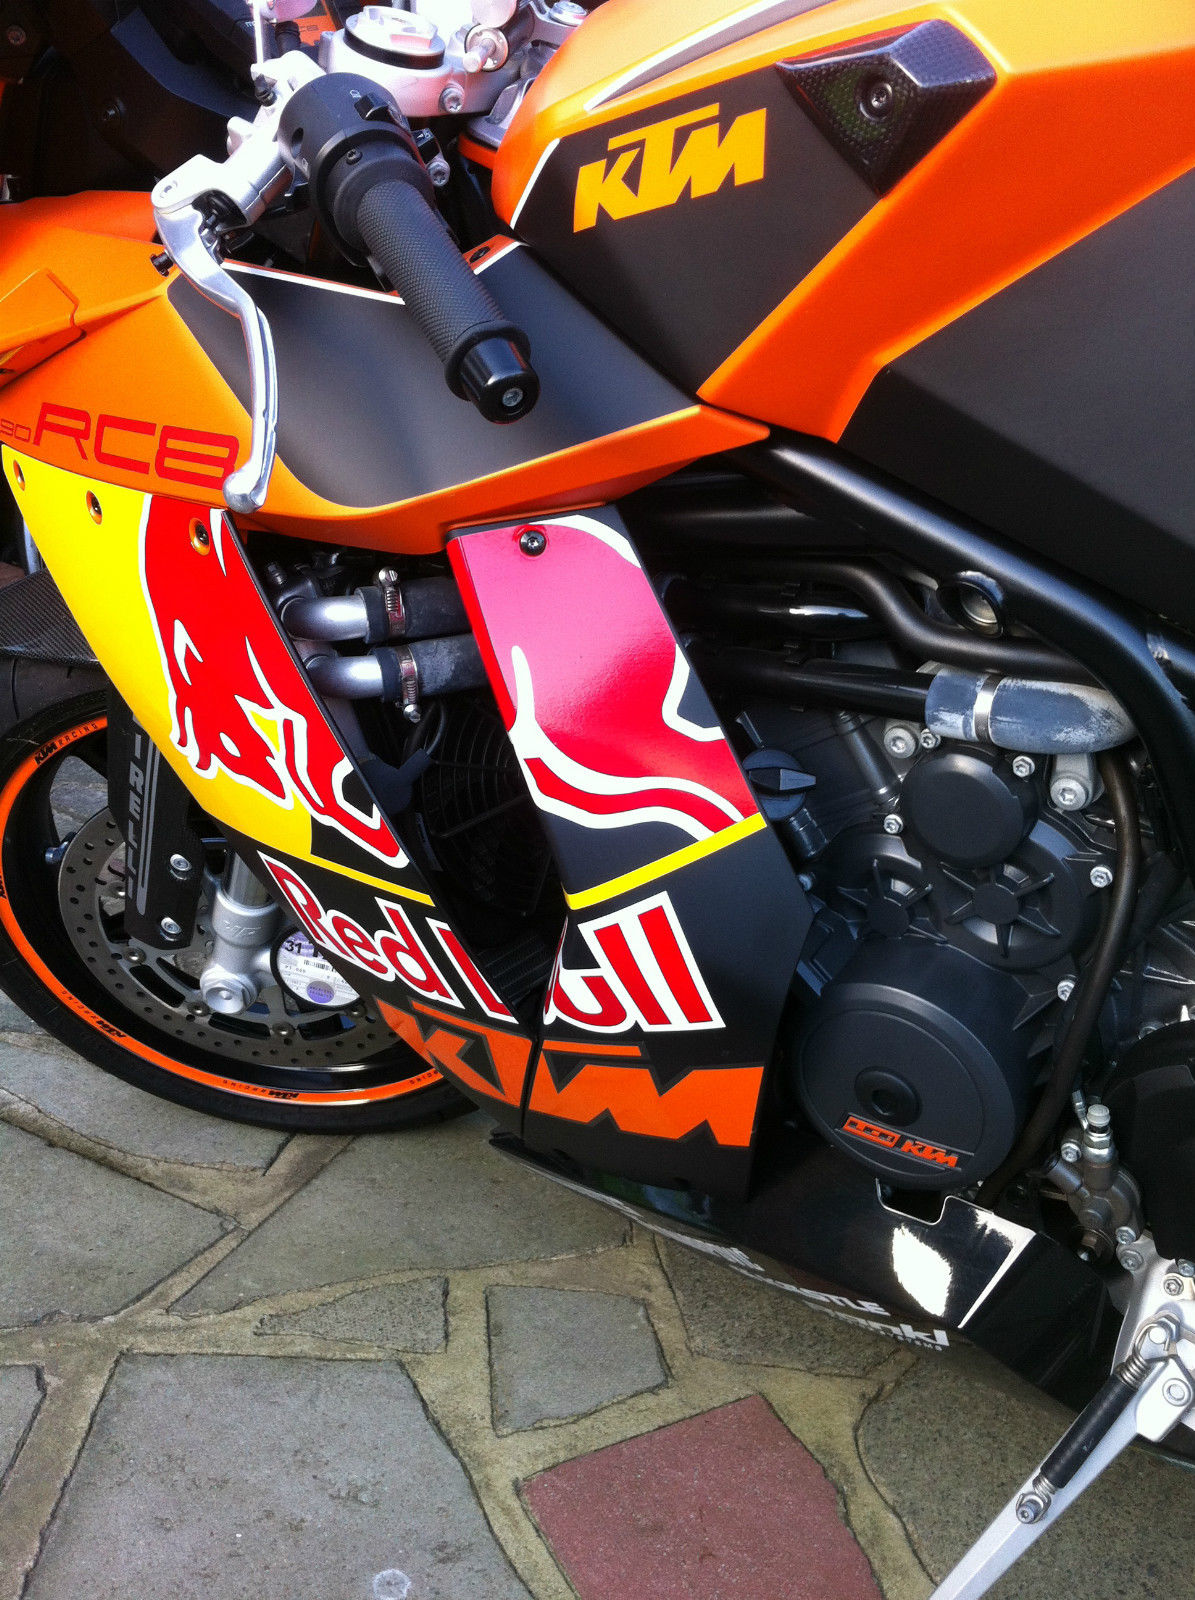 ktm rc8 1190 with red bull graphics. Black Bedroom Furniture Sets. Home Design Ideas